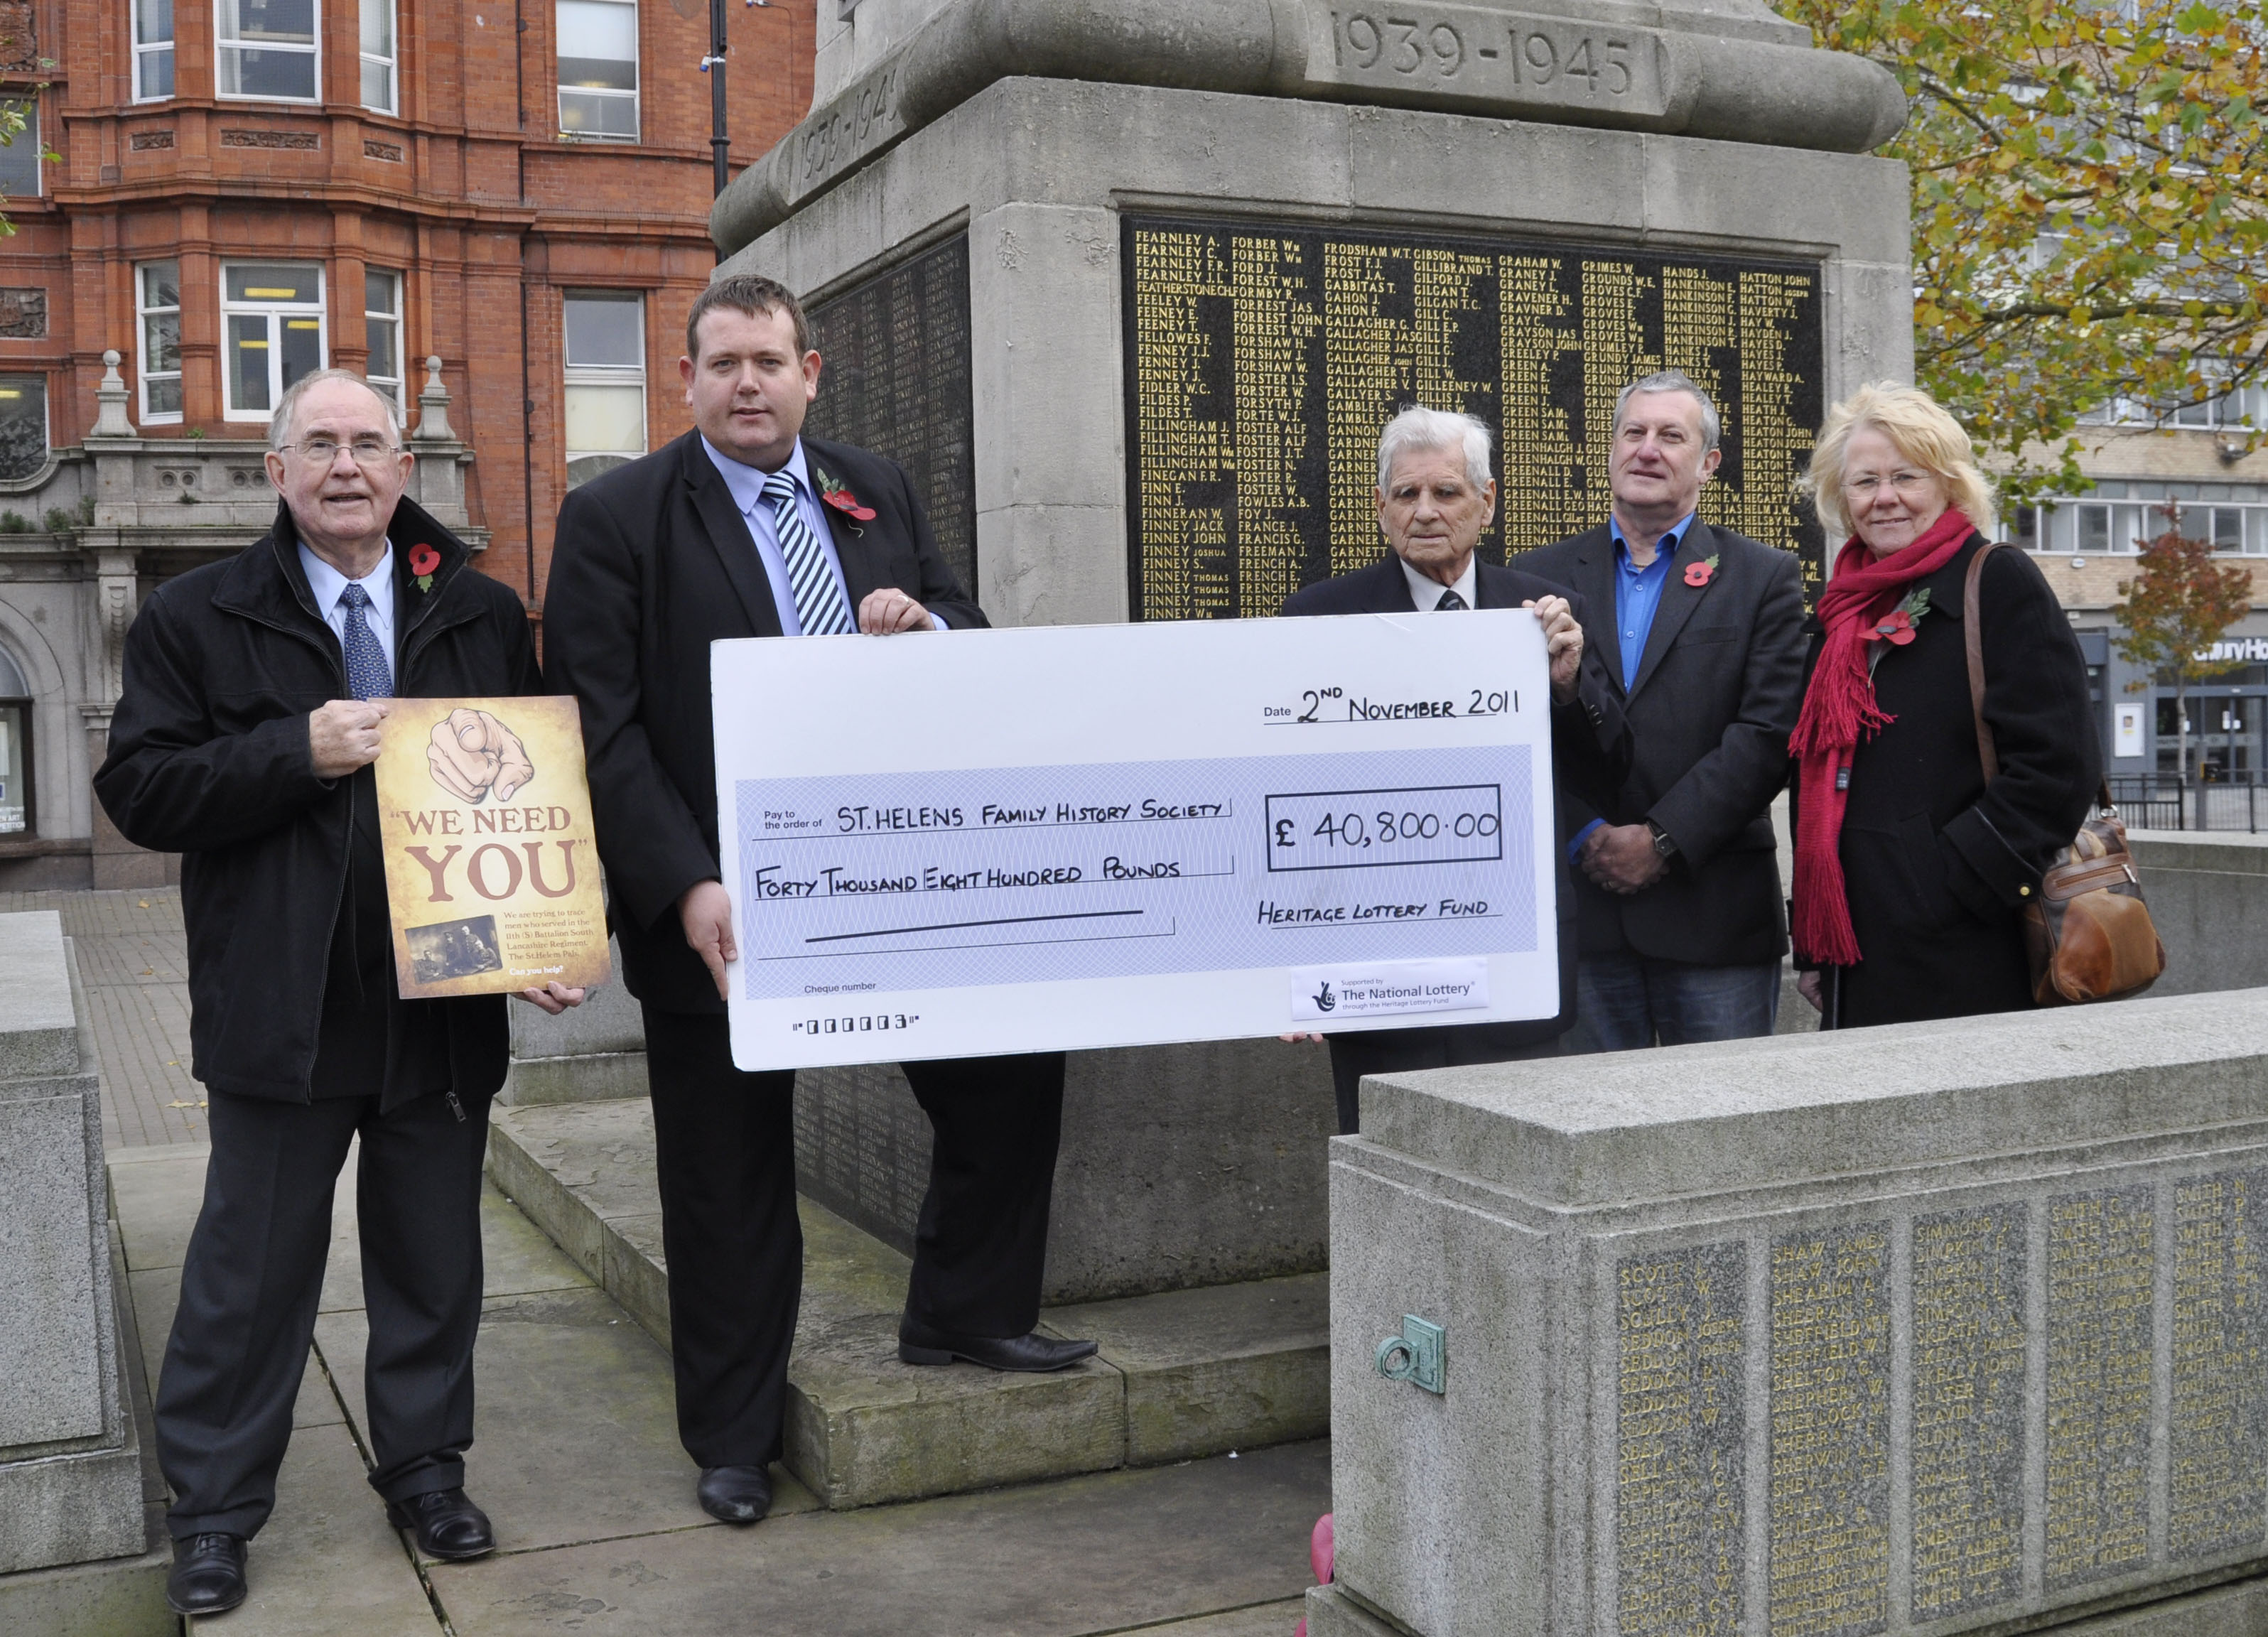 Awarded a £40,800 grant from the Heritage Lottery Fund